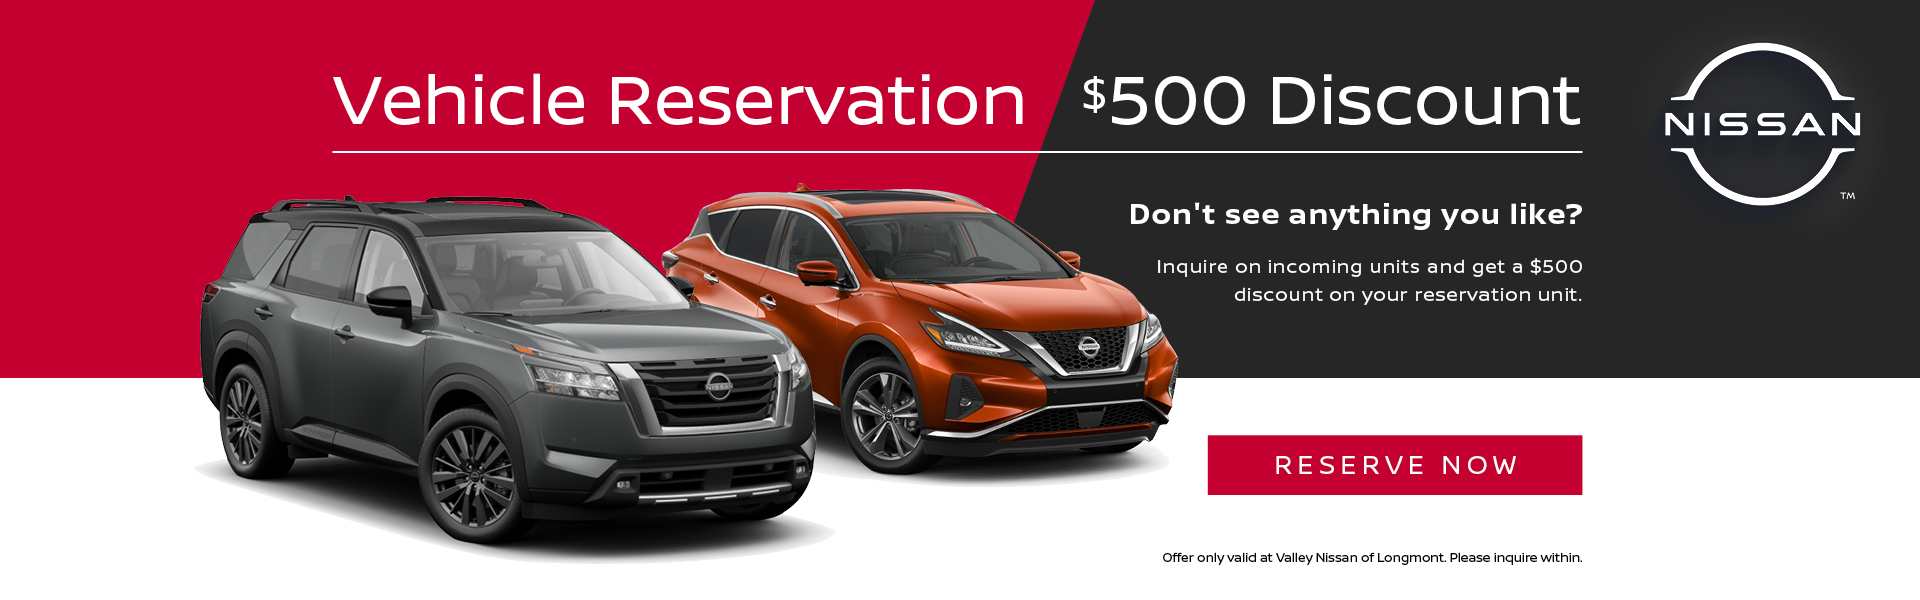 vehicle reservation discount